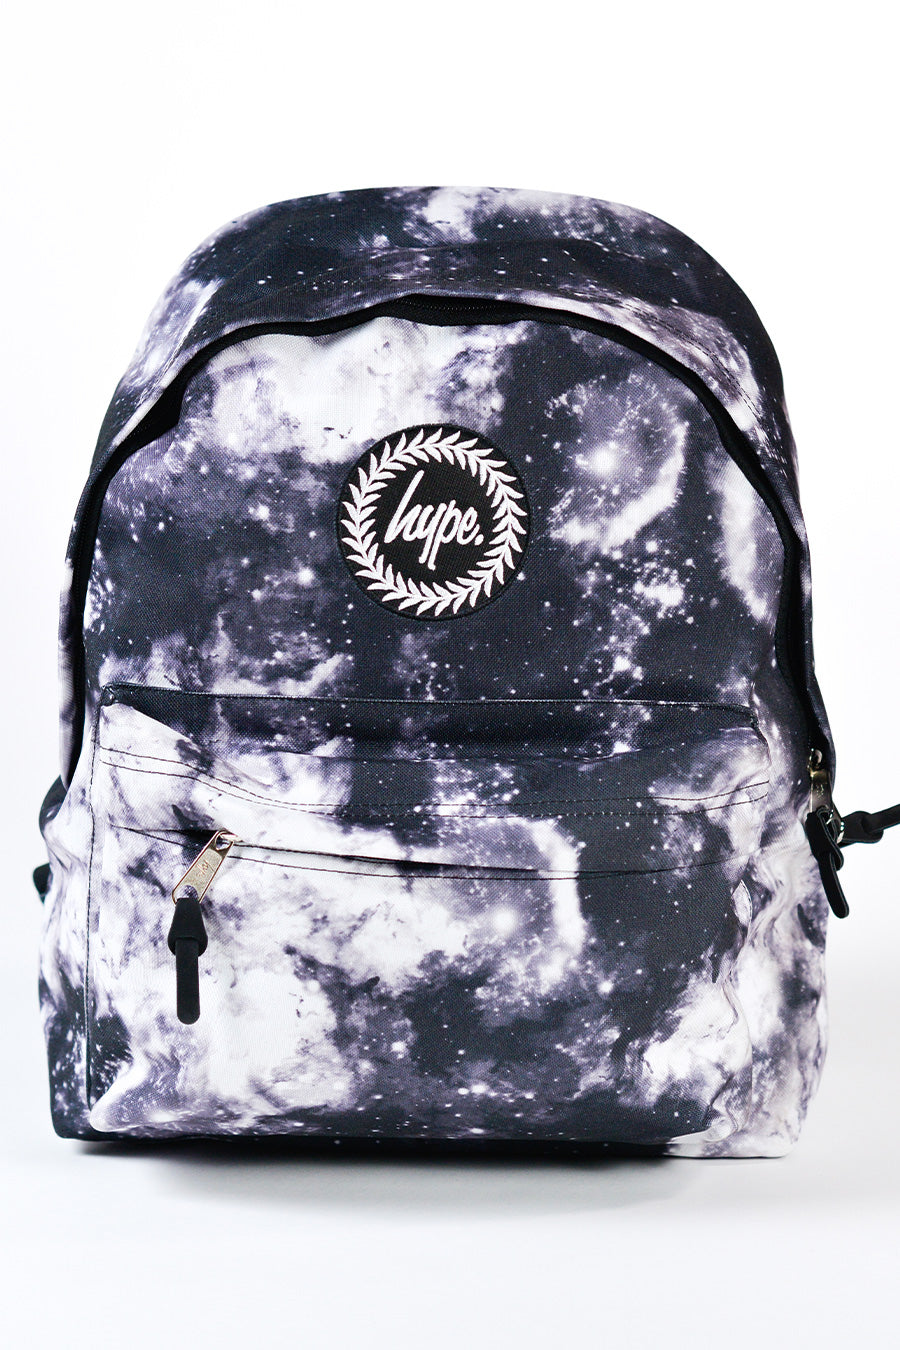 HYPE BLACK COSMO BACKPACK